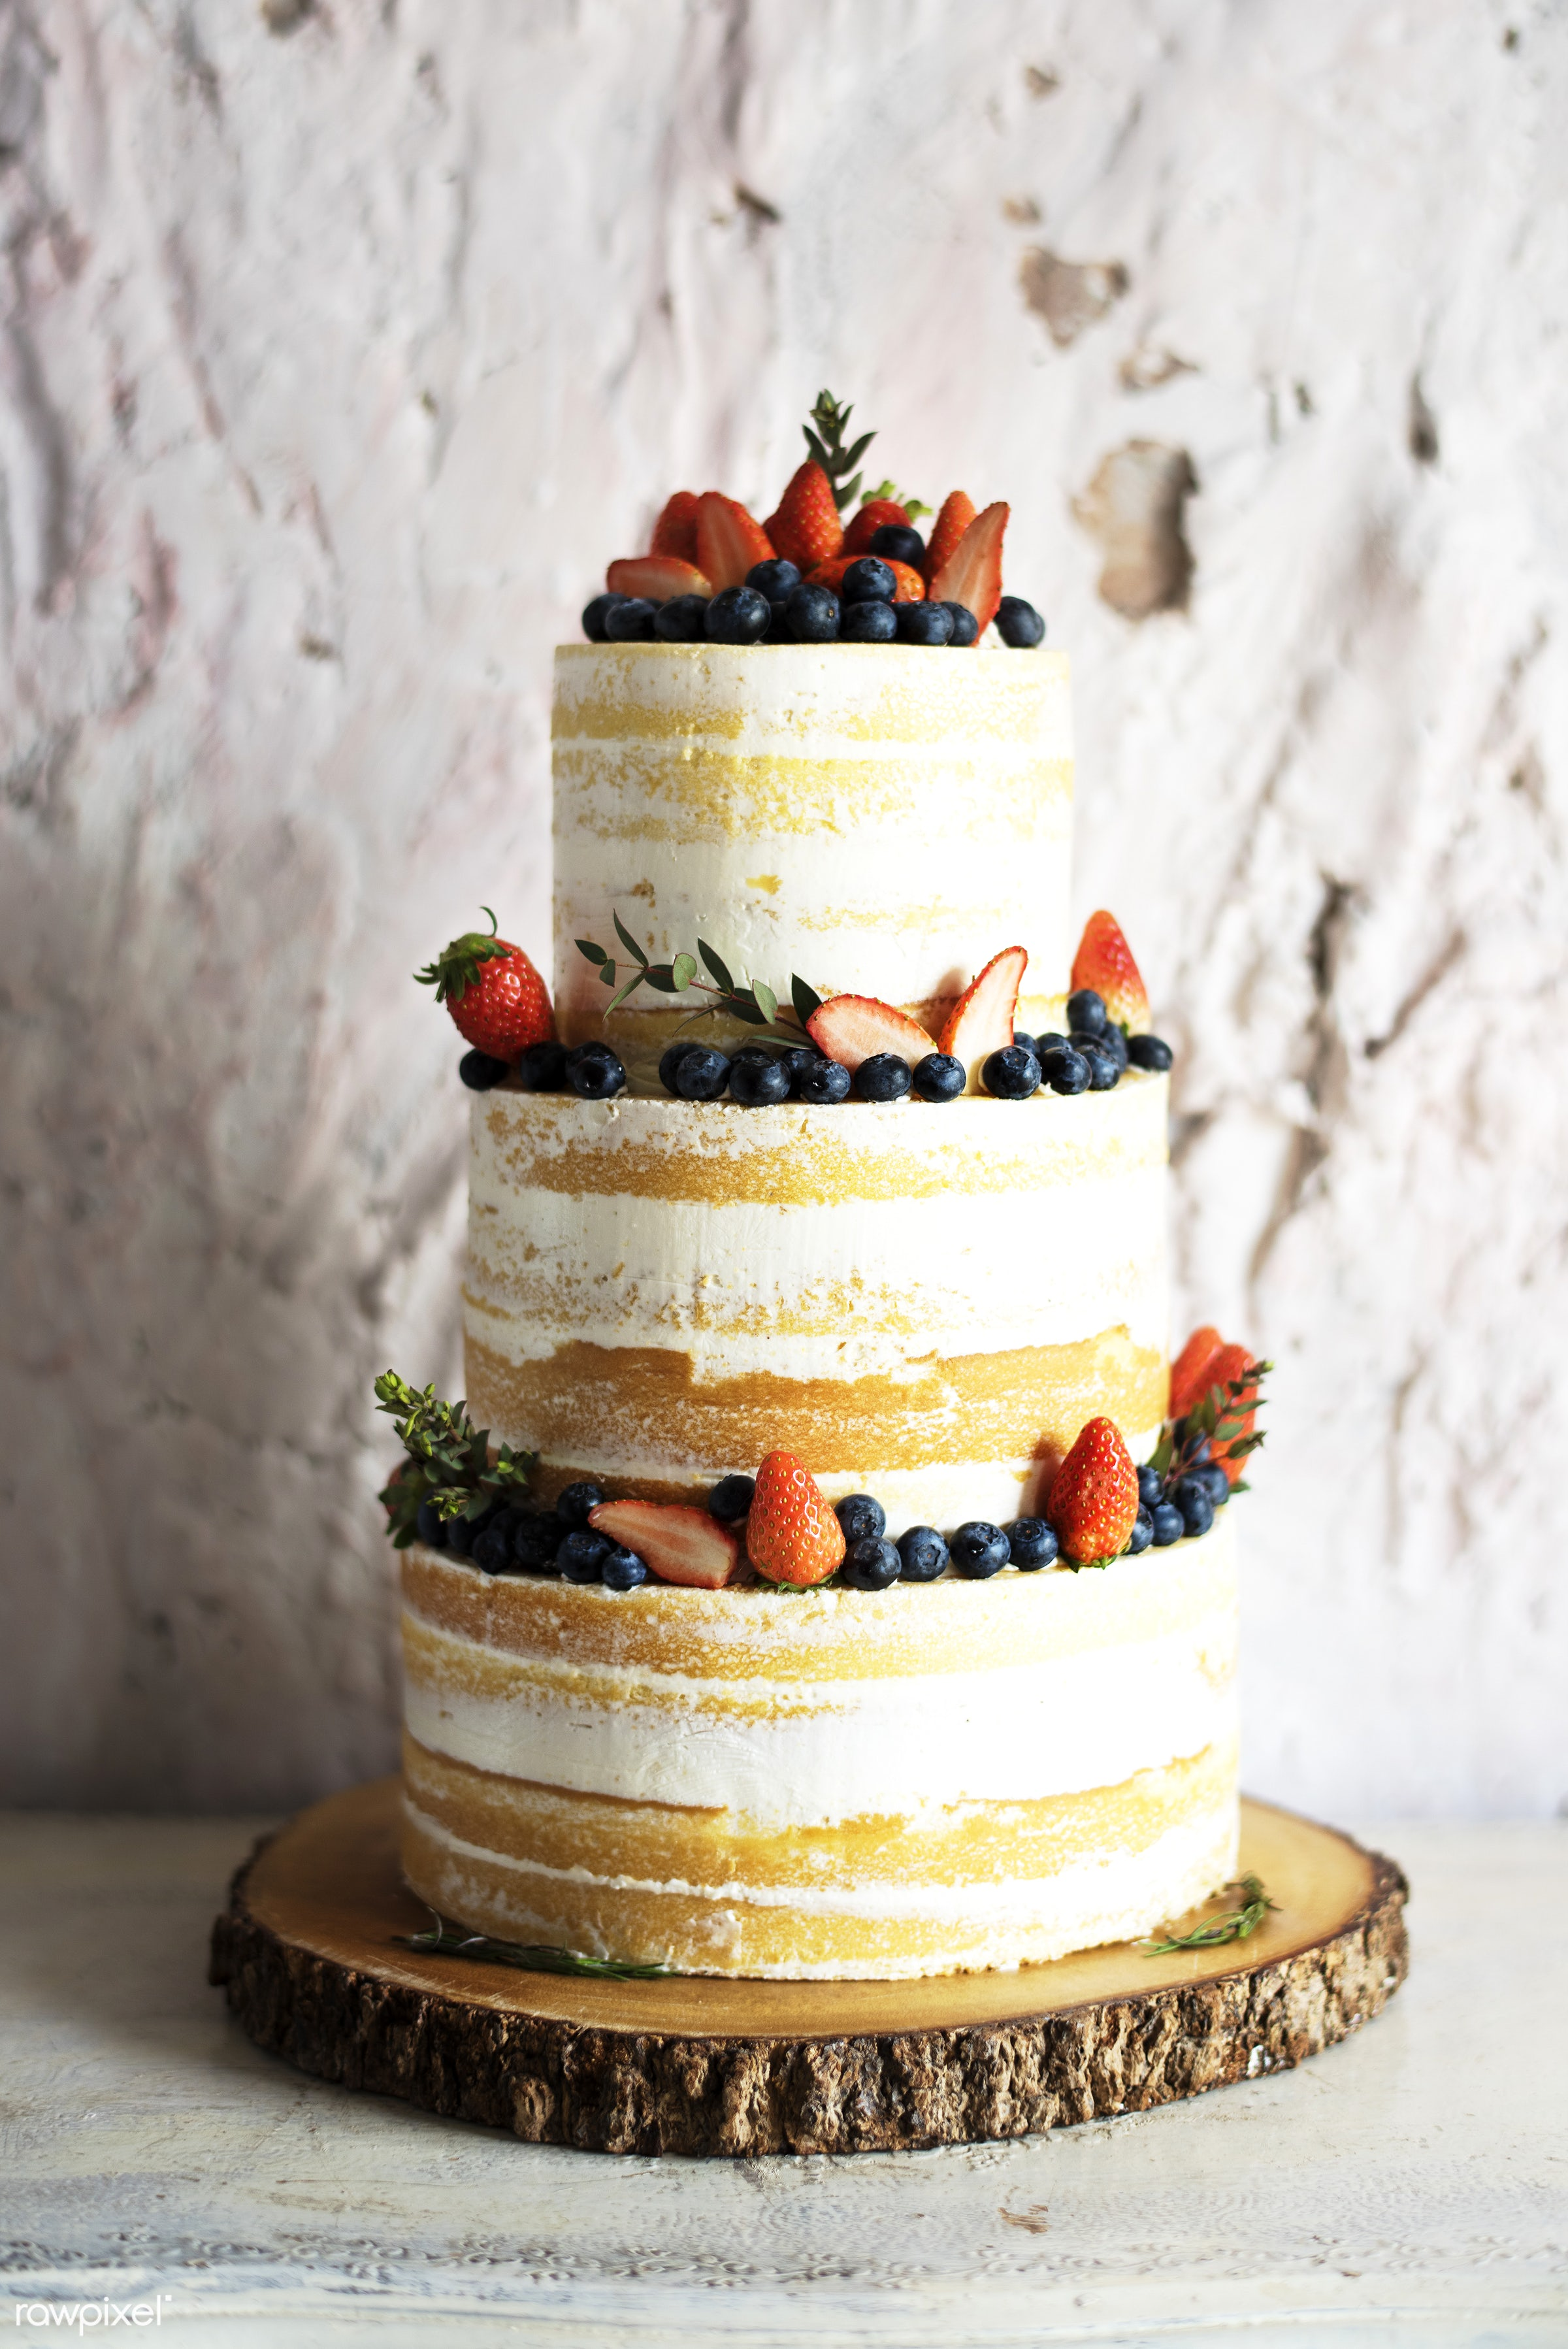 nobody, blueberry, layers, bakery, event, banquet, dessert, cake, decoration, wooden base, white, ceremony, marriage,...